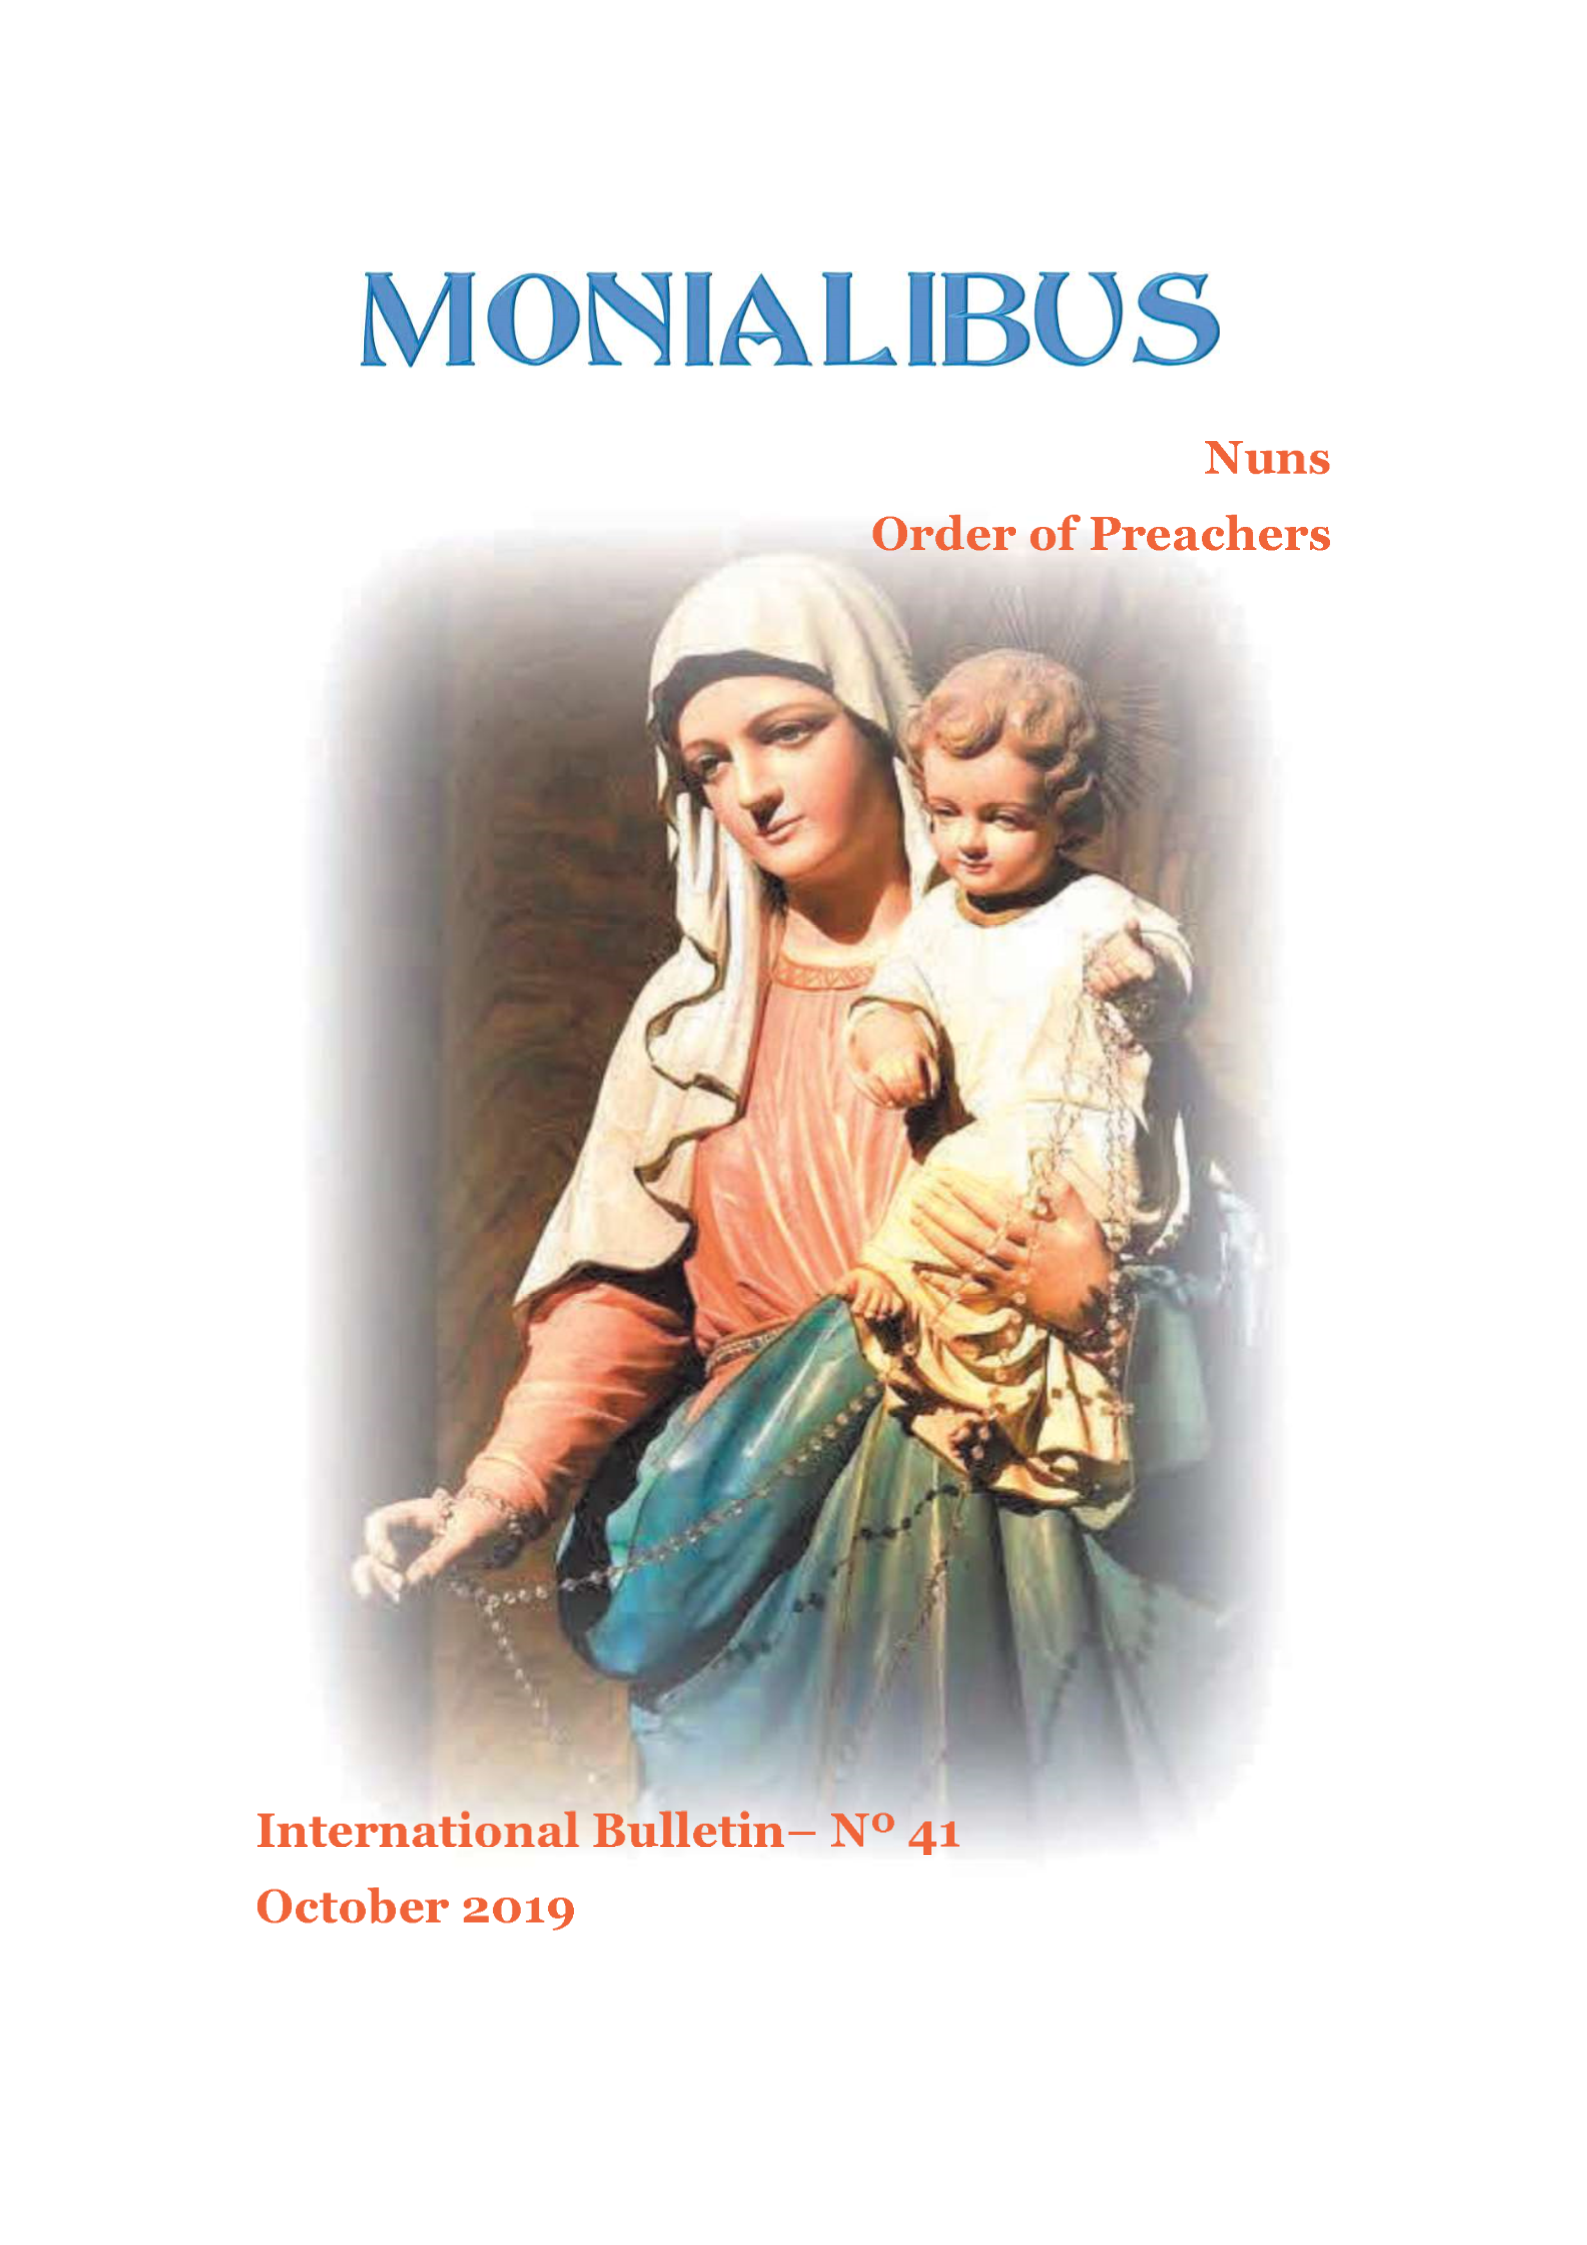 MONIALIBUS n°41 is out!